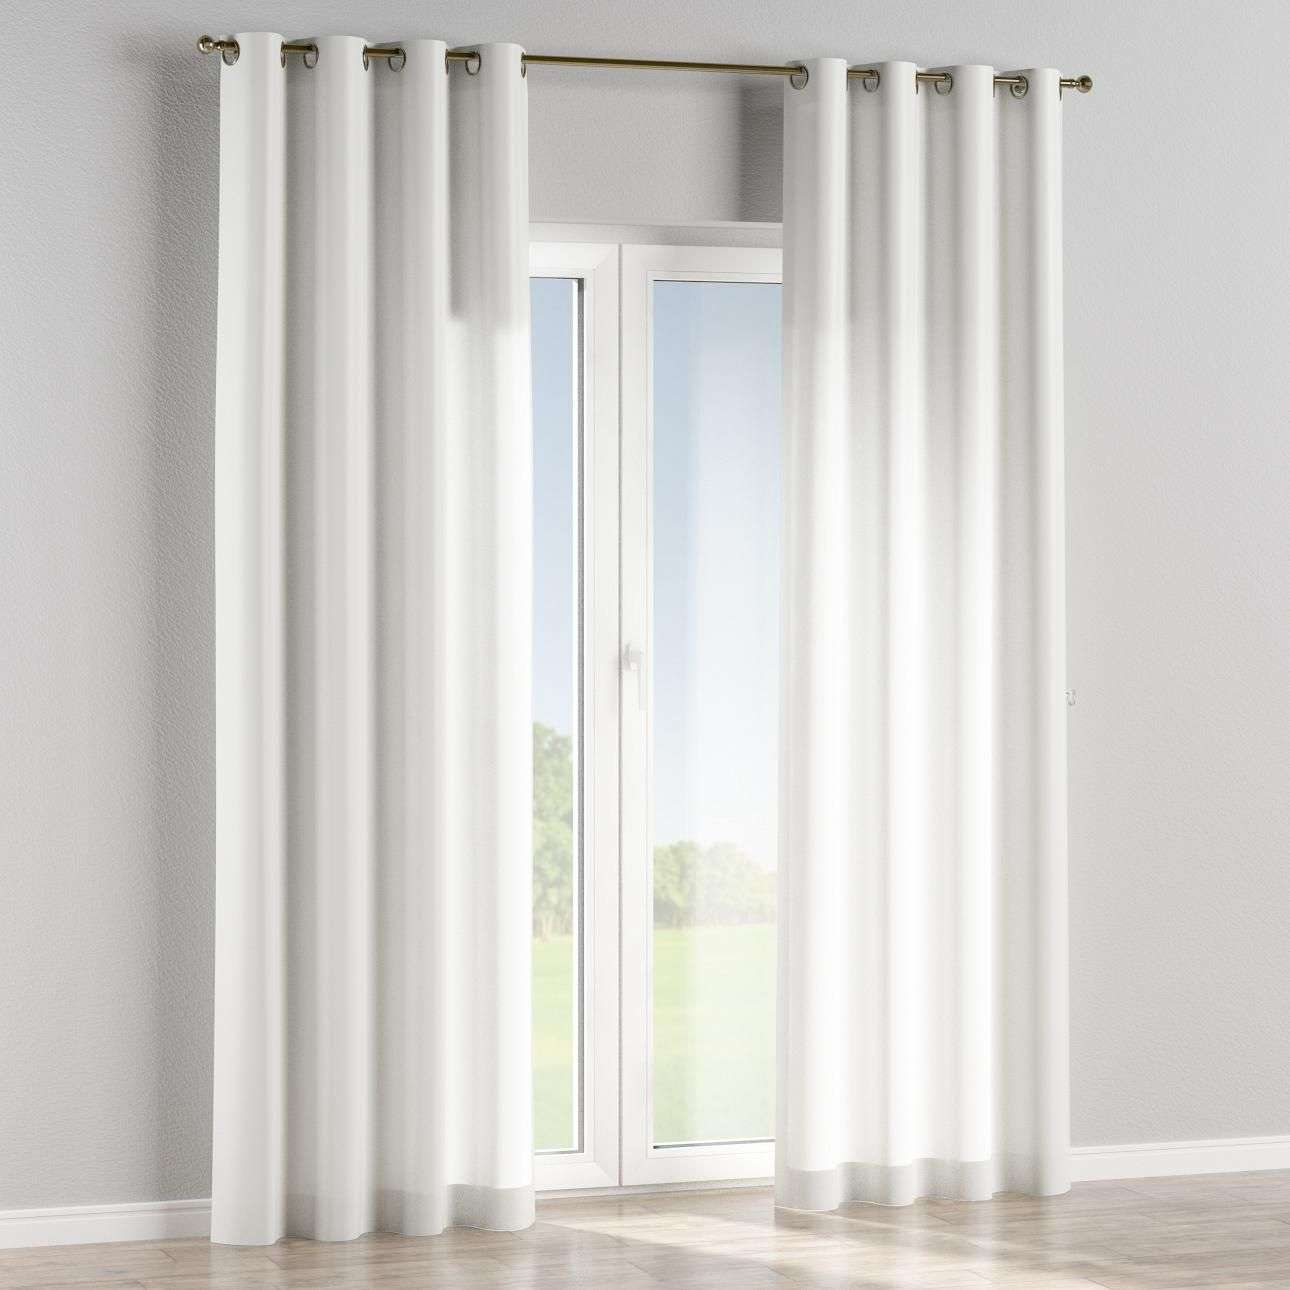 Eyelet lined curtains in collection Marina, fabric: 140-14